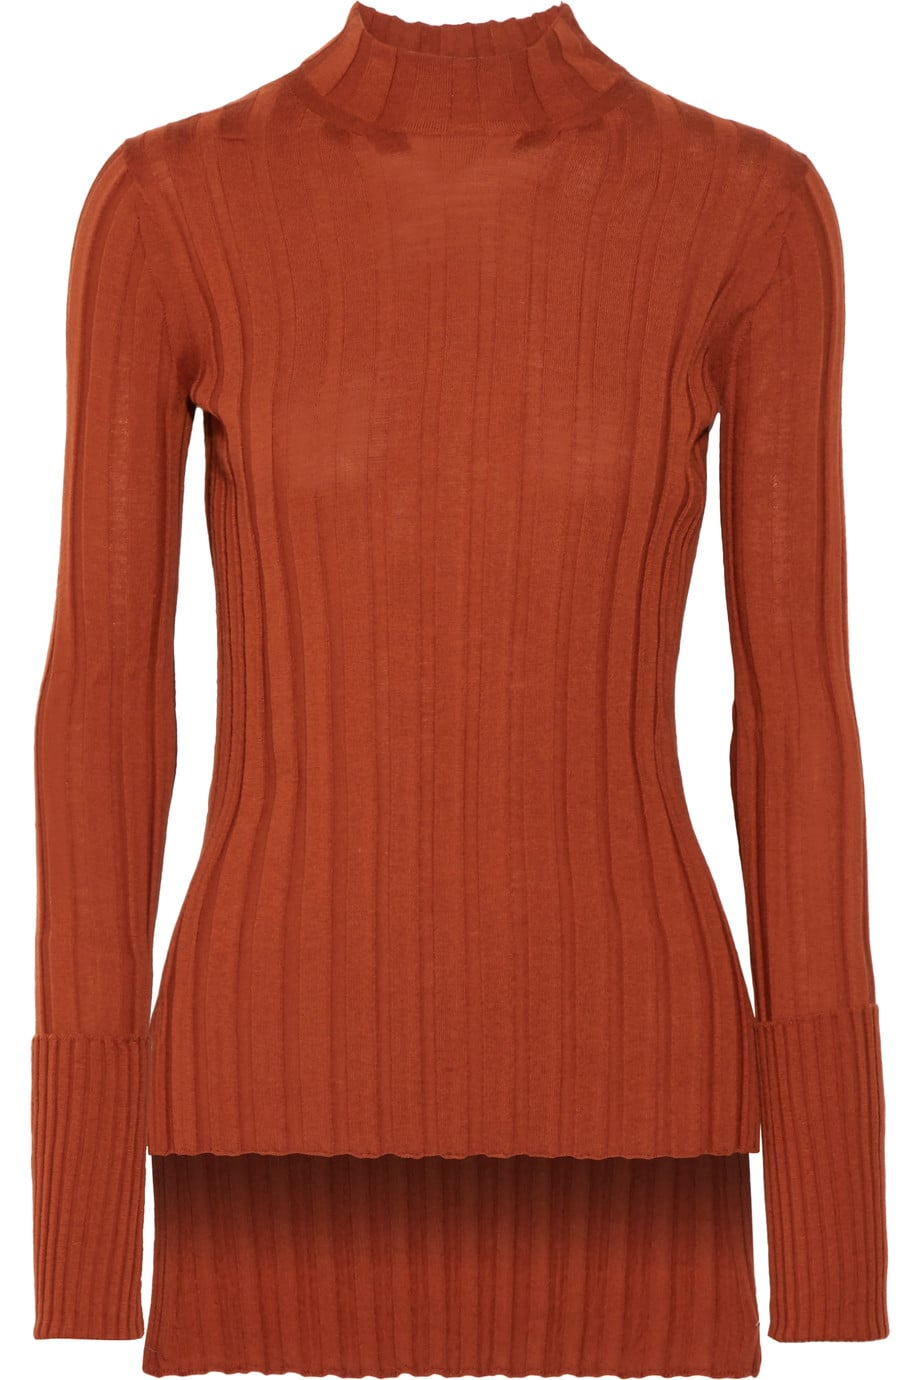 Theory Ribbed Merino Sweater Selena Gomez Just Wore Your Pumpkin Spice Latte On Her Sleeve Literally Popsugar Fashion Photo 17